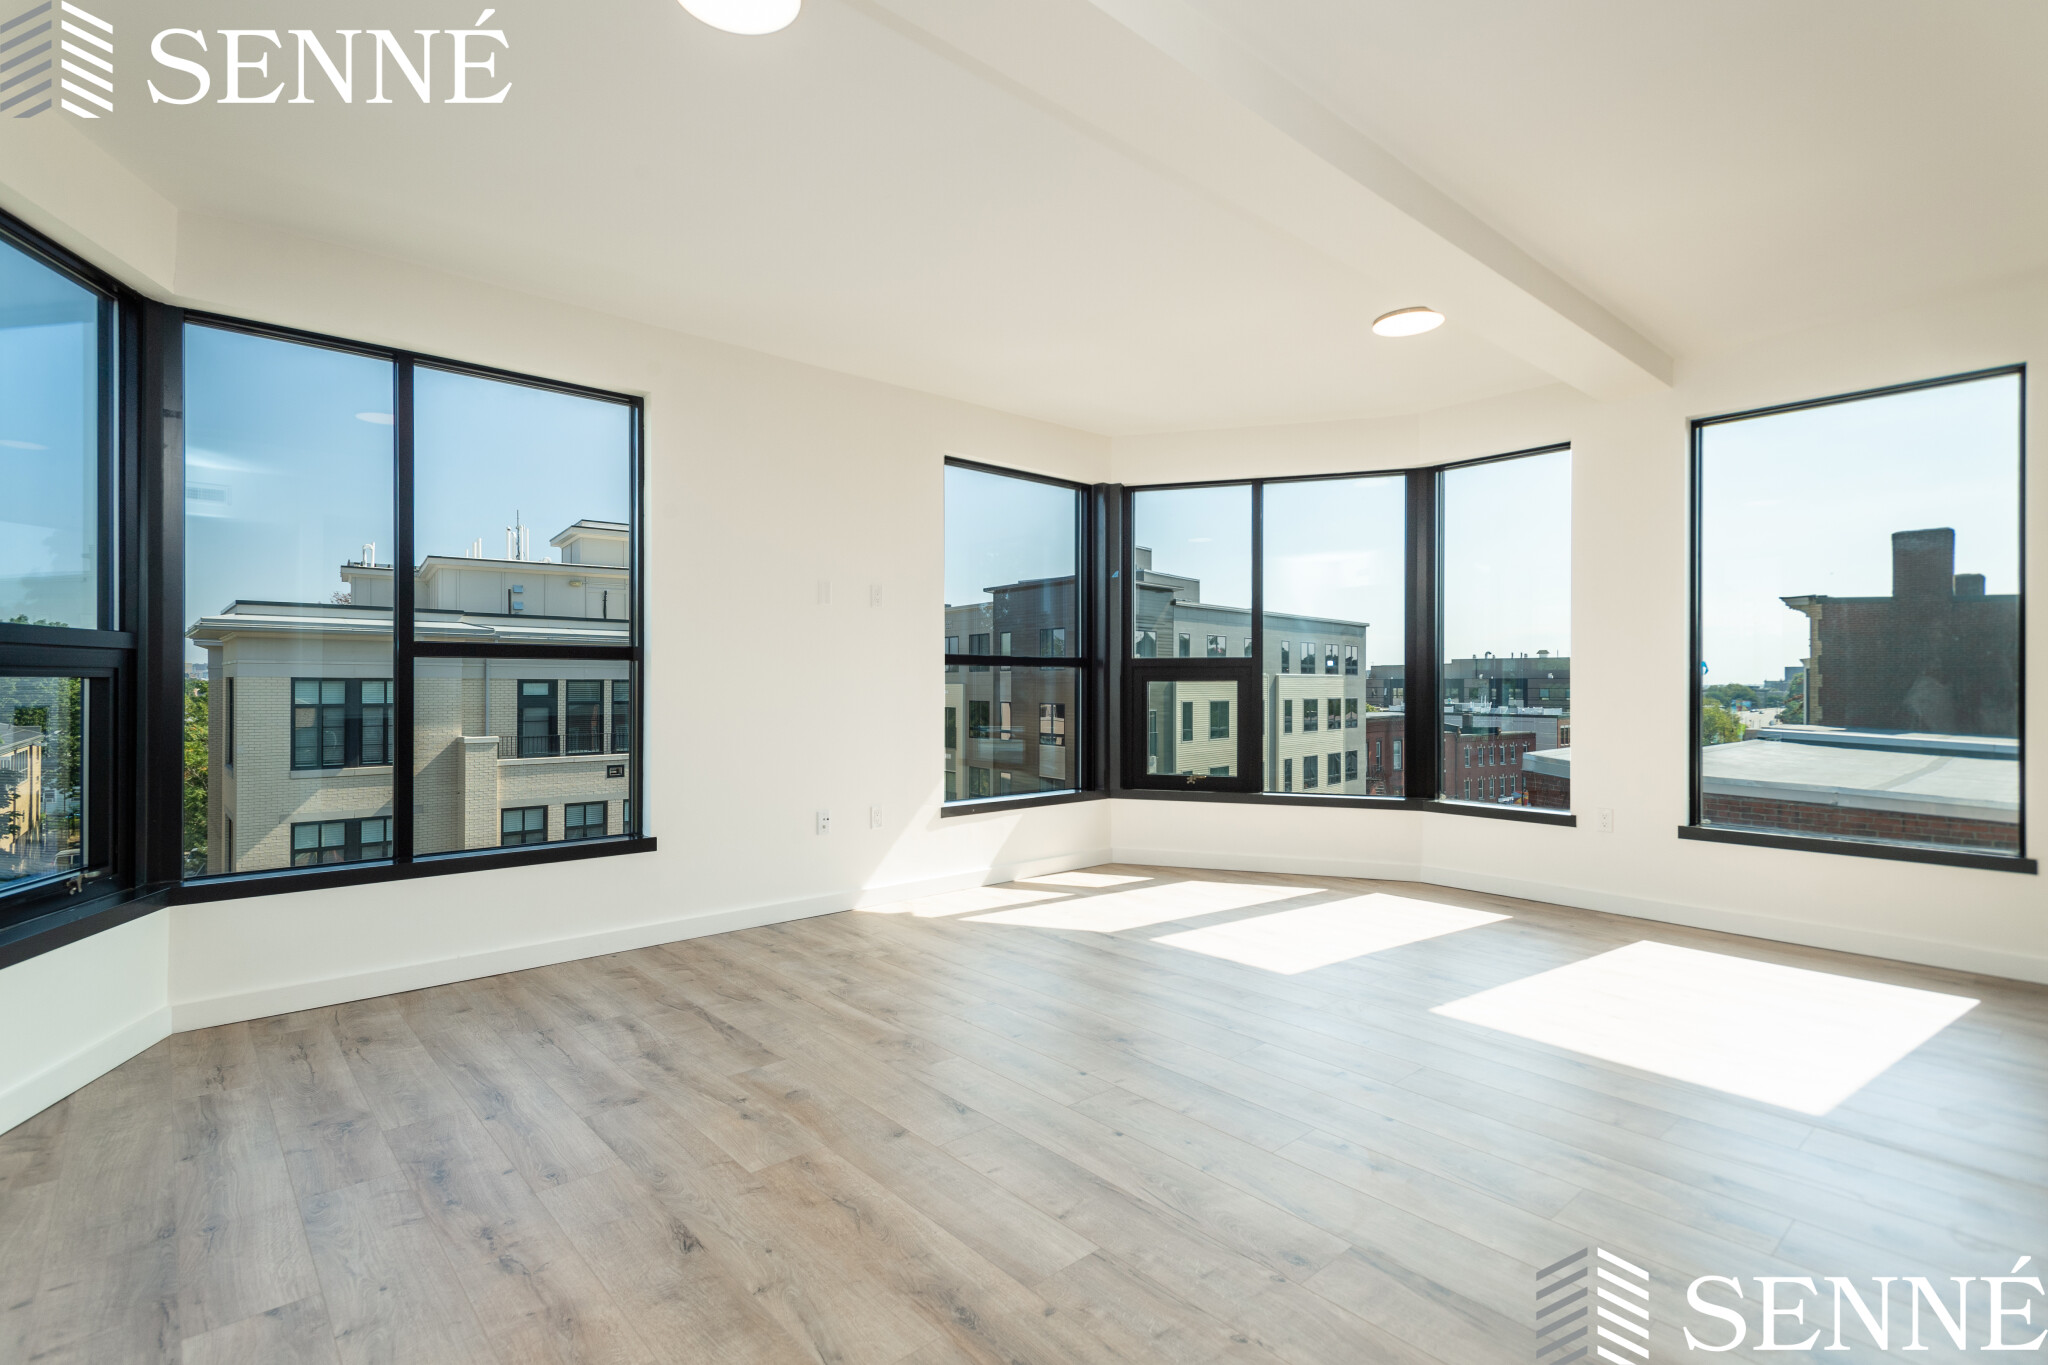 2 Beds, 1 Bath apartment in Boston, Mission Hill for $3,417